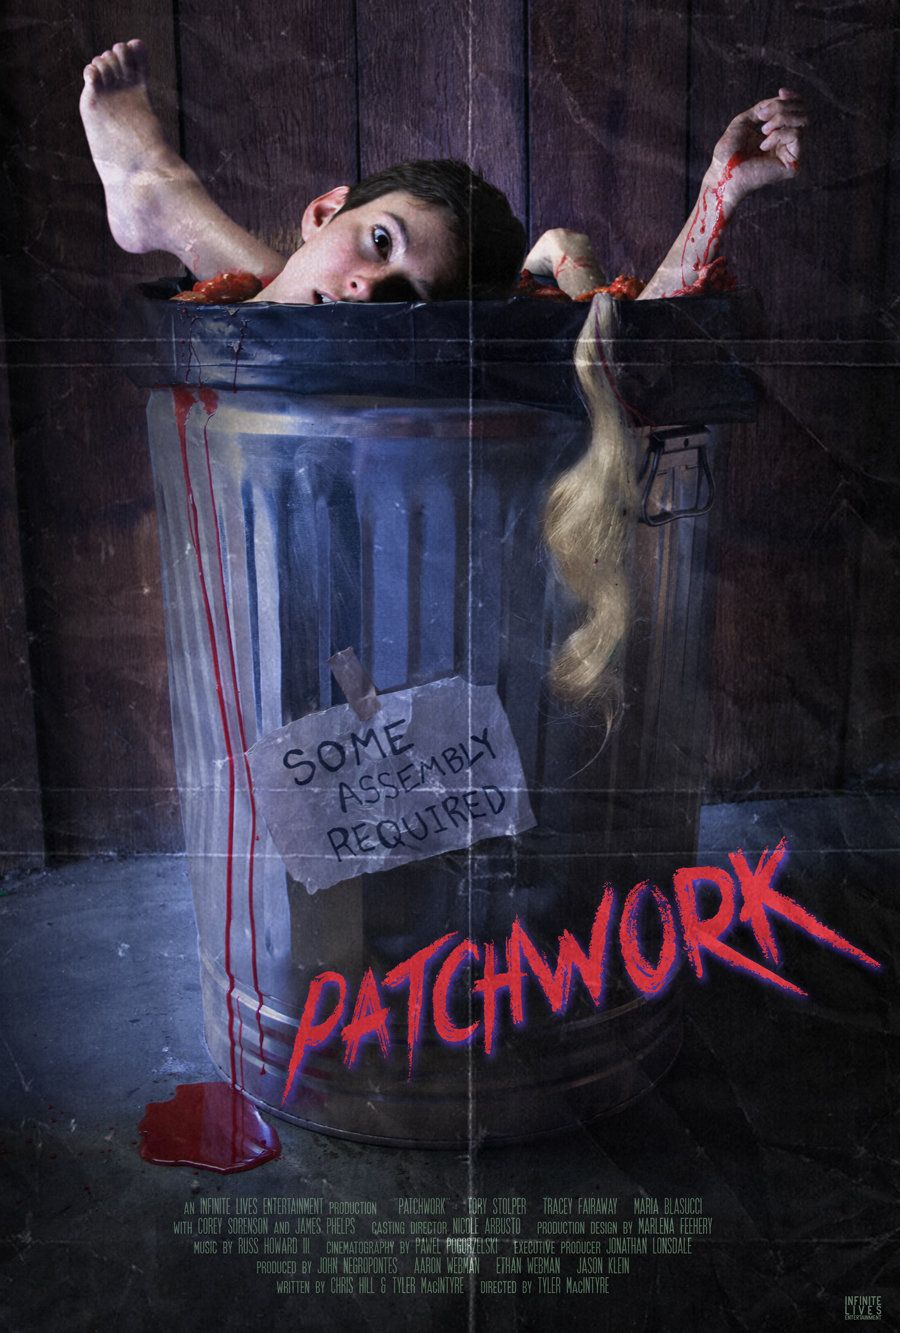 Patchwork___________  A bombastic throw-back horror-comedy that follows three young women who go out partying one night and find themselves Frankensteined together in one body. Now they must put aside their differences so they can find who did this and exact revenge!  RELEASE DATE 2015